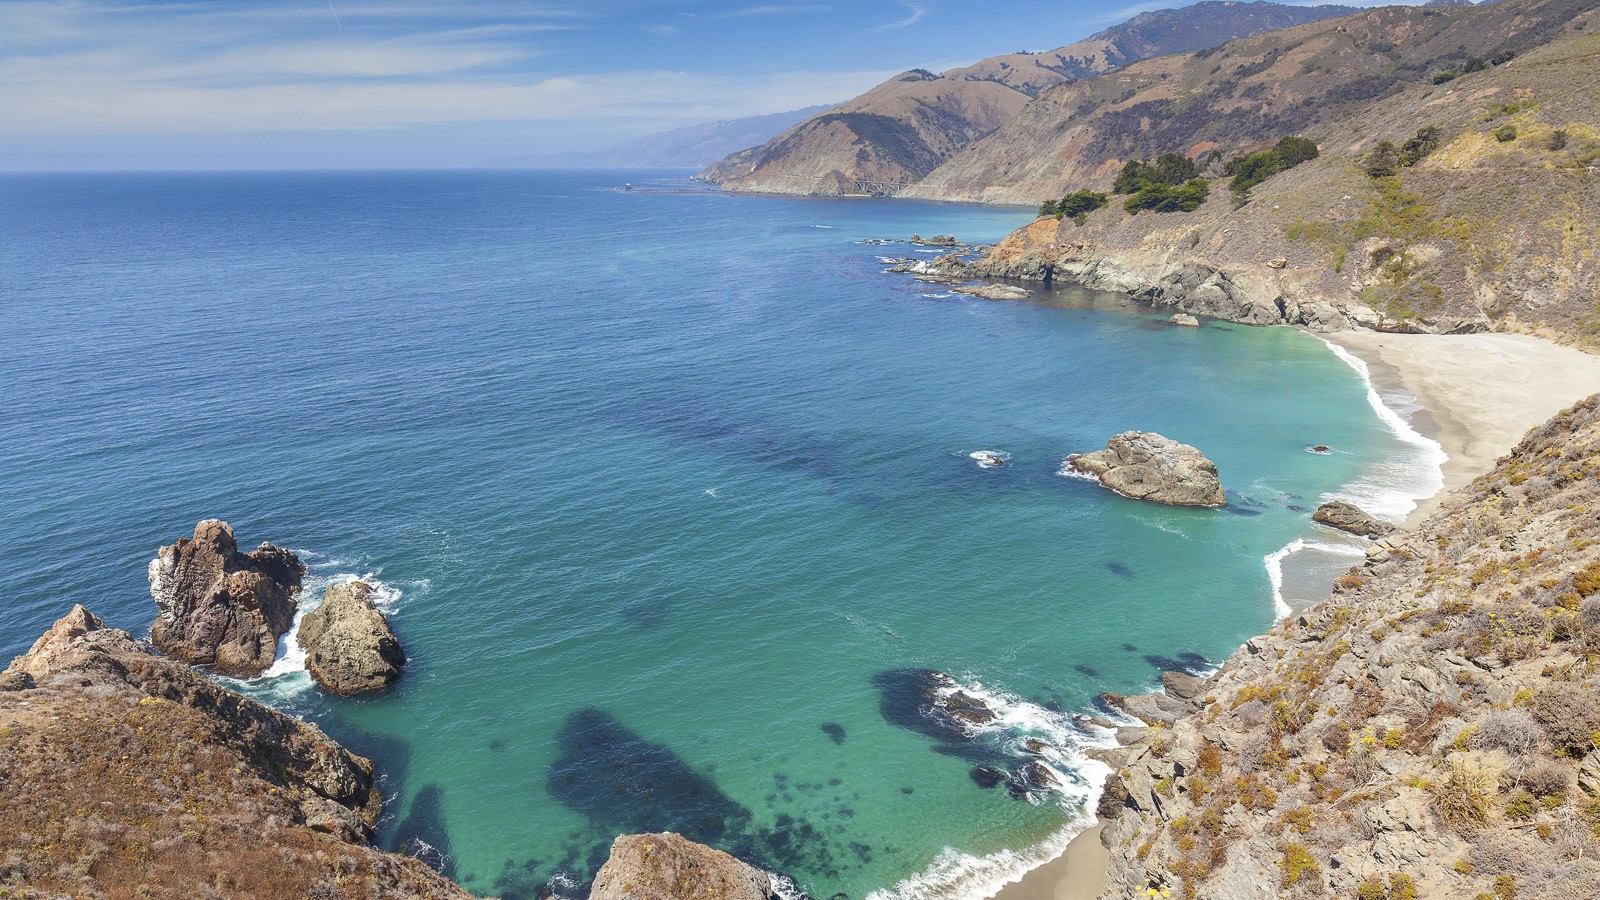 View of the California coastline along Pacific Coast Highway, US